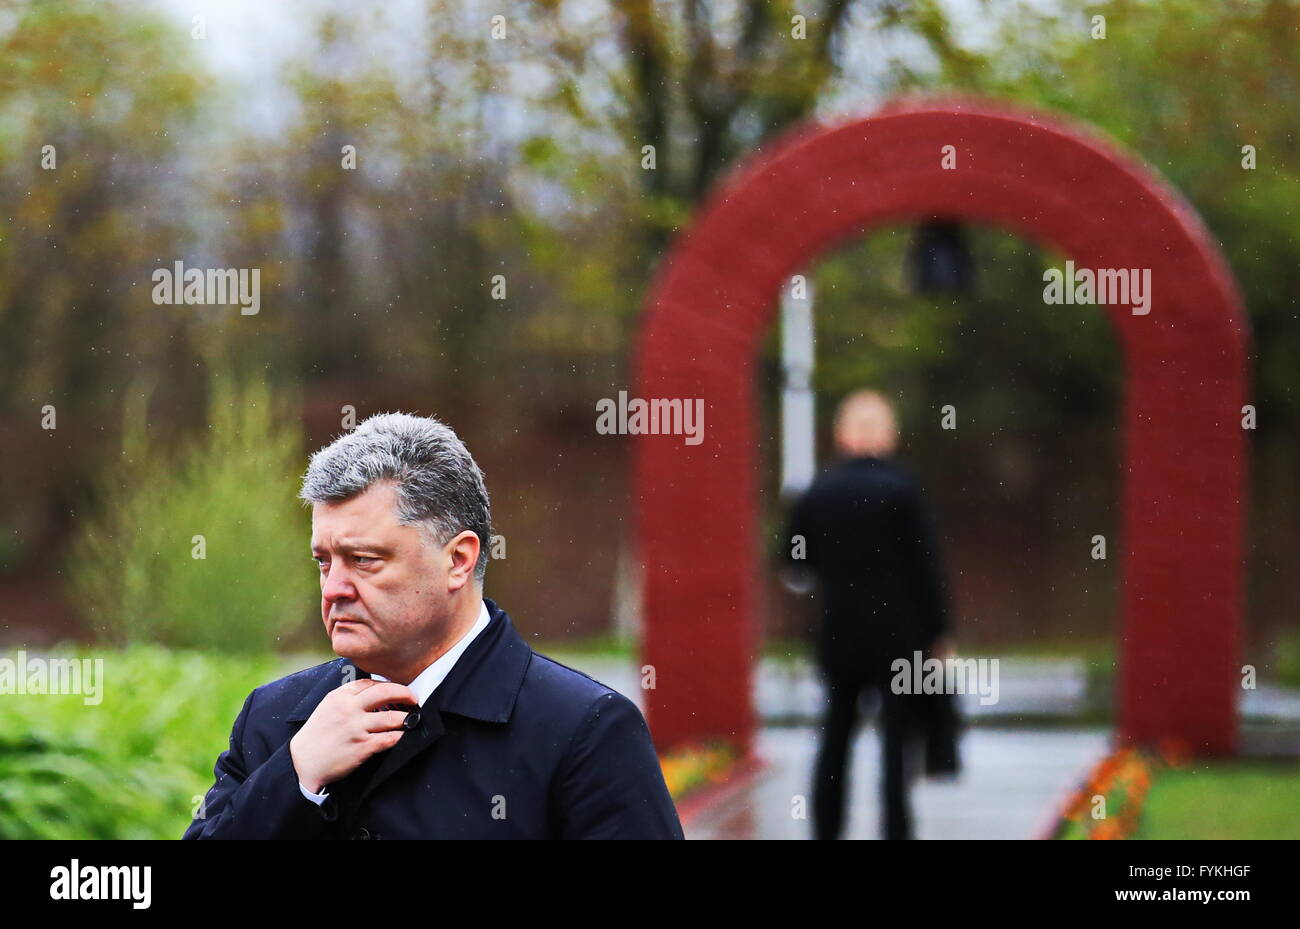 Chernobyl, Ukraine. 26th Apr, 2016. Ukrainian President Petro Poroshenko attends a commemorative event marking the - Stock Image